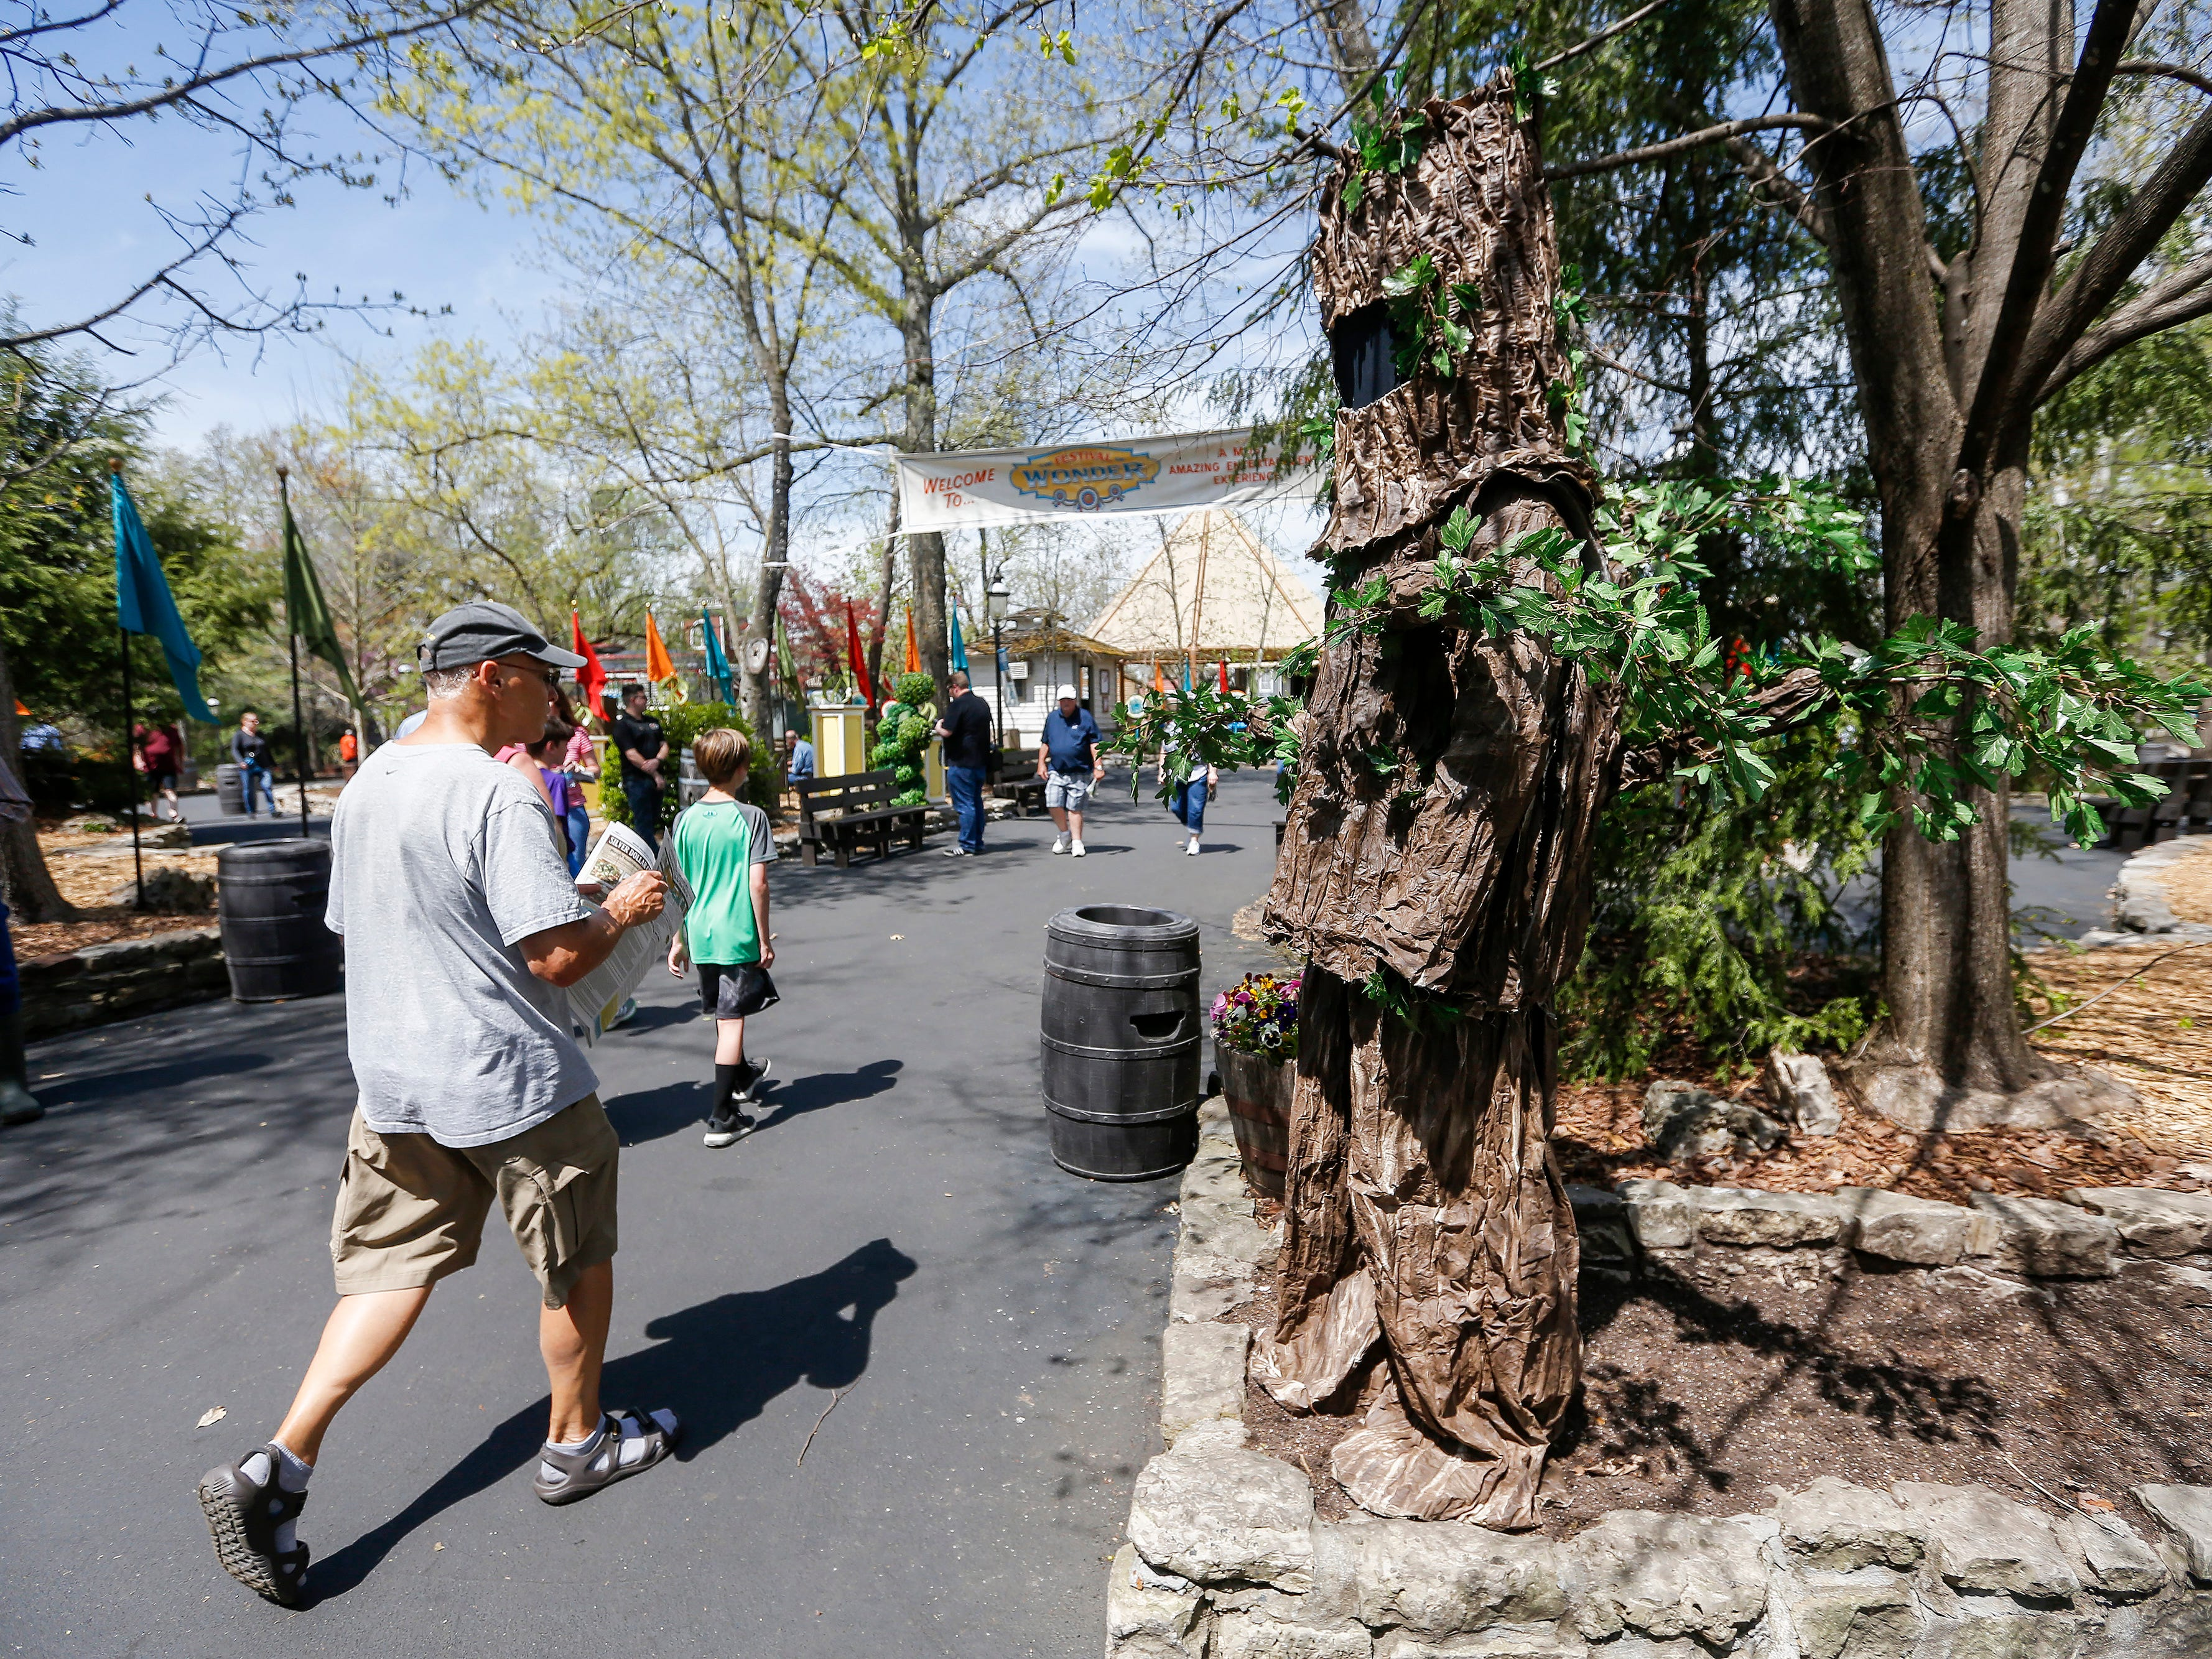 A living tree, right, greets patrons as they walk through the entrance during the Festival of Wonder on Wednesday, April 10, 2019 at Silver Dollar City. The event runs Wednesdays through Sundays, April 10-28.